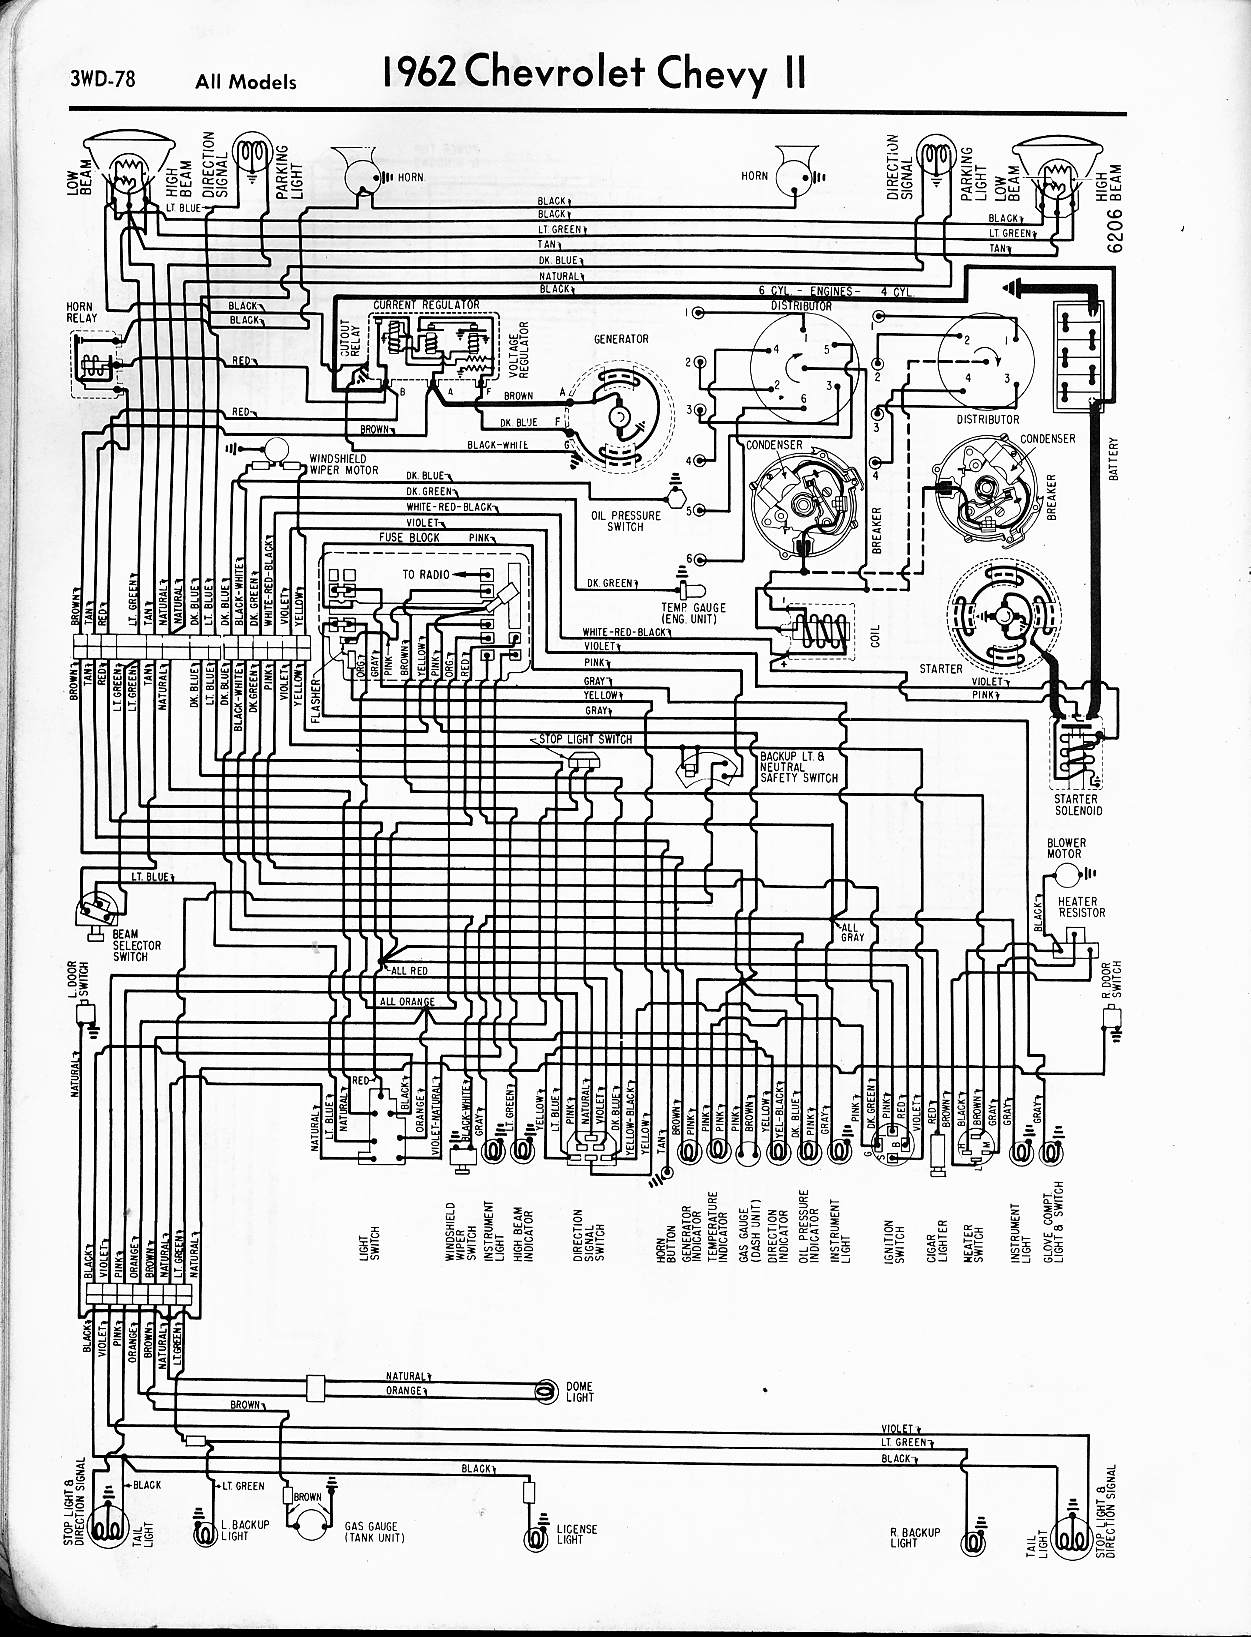 MWireChev62_3WD 078 1963 c10 pickup wiring diagram pdf chevy wiring diagrams \u2022 free 67 Chevy 2 Nova at webbmarketing.co